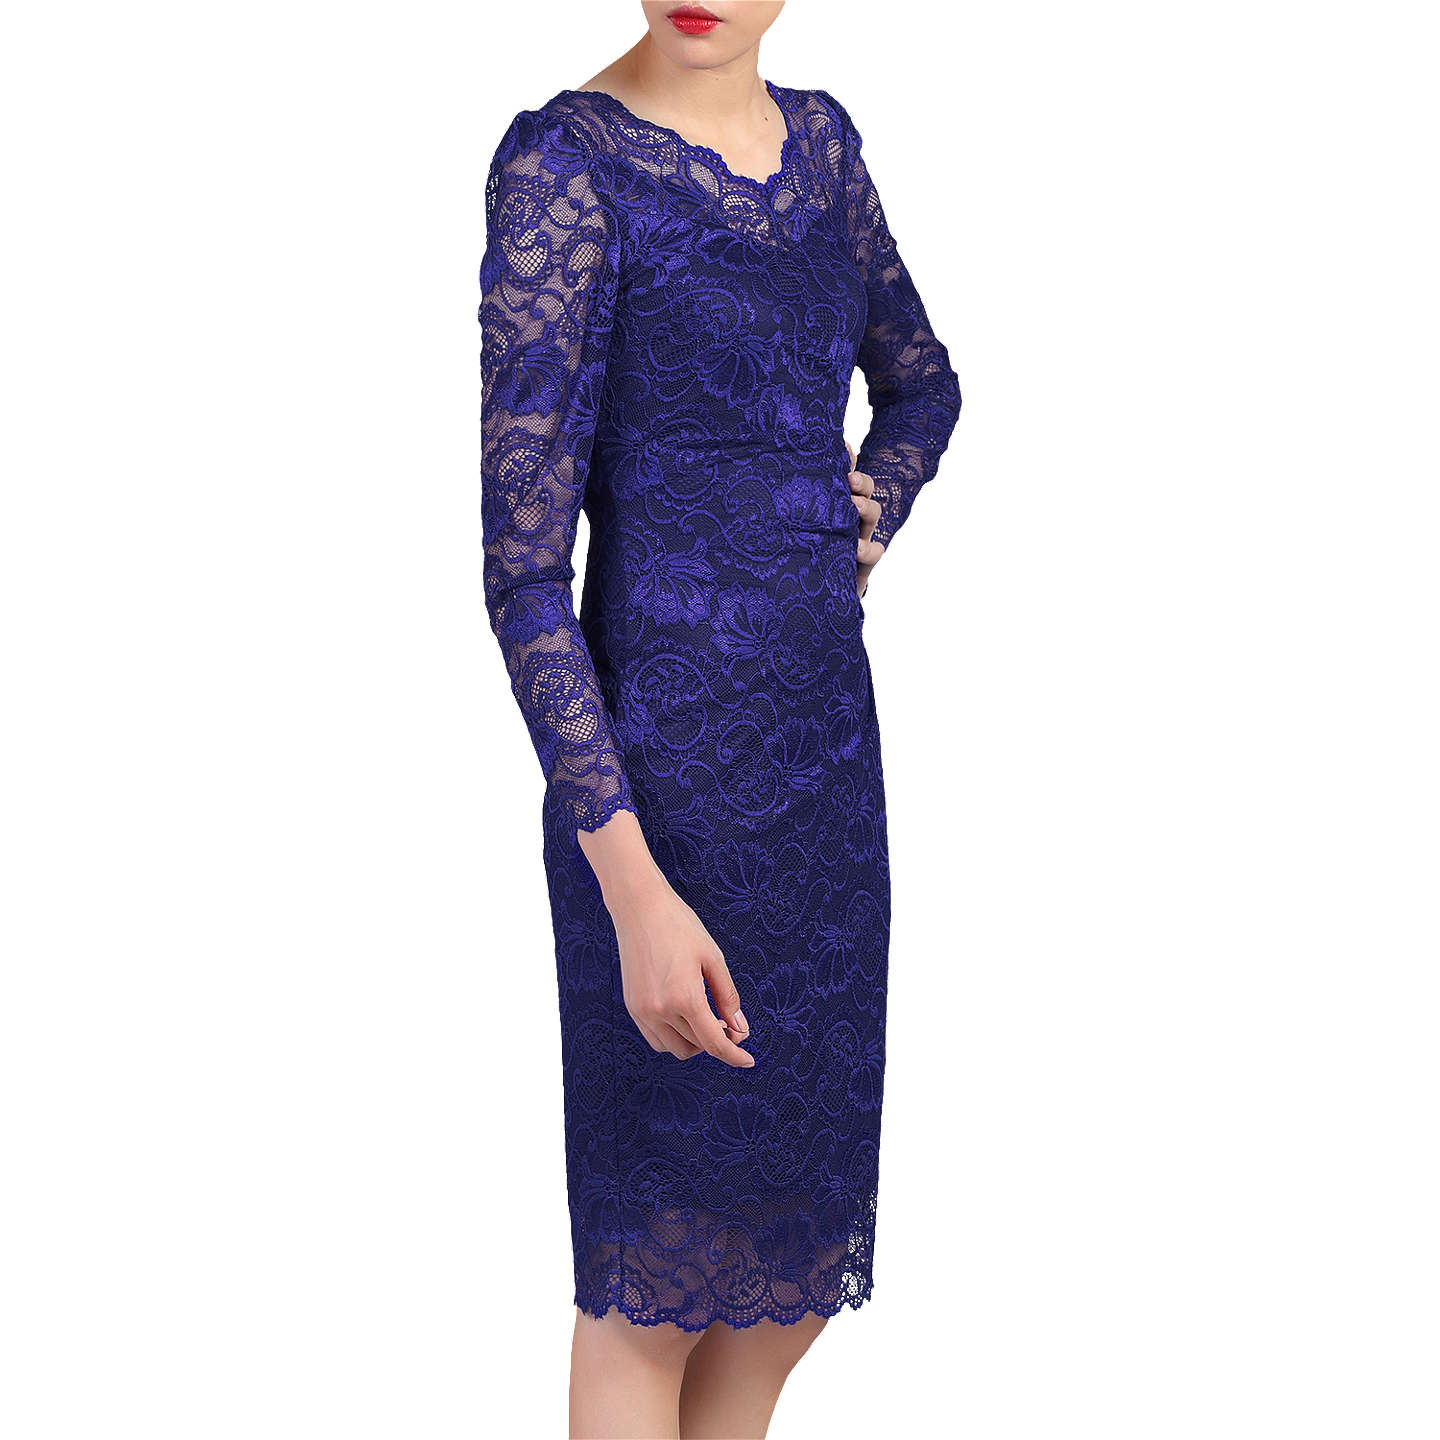 BuyJolie Moi Long Sleeved Lace Bodycon Dress, Royal Blue, 16 Online at johnlewis.com